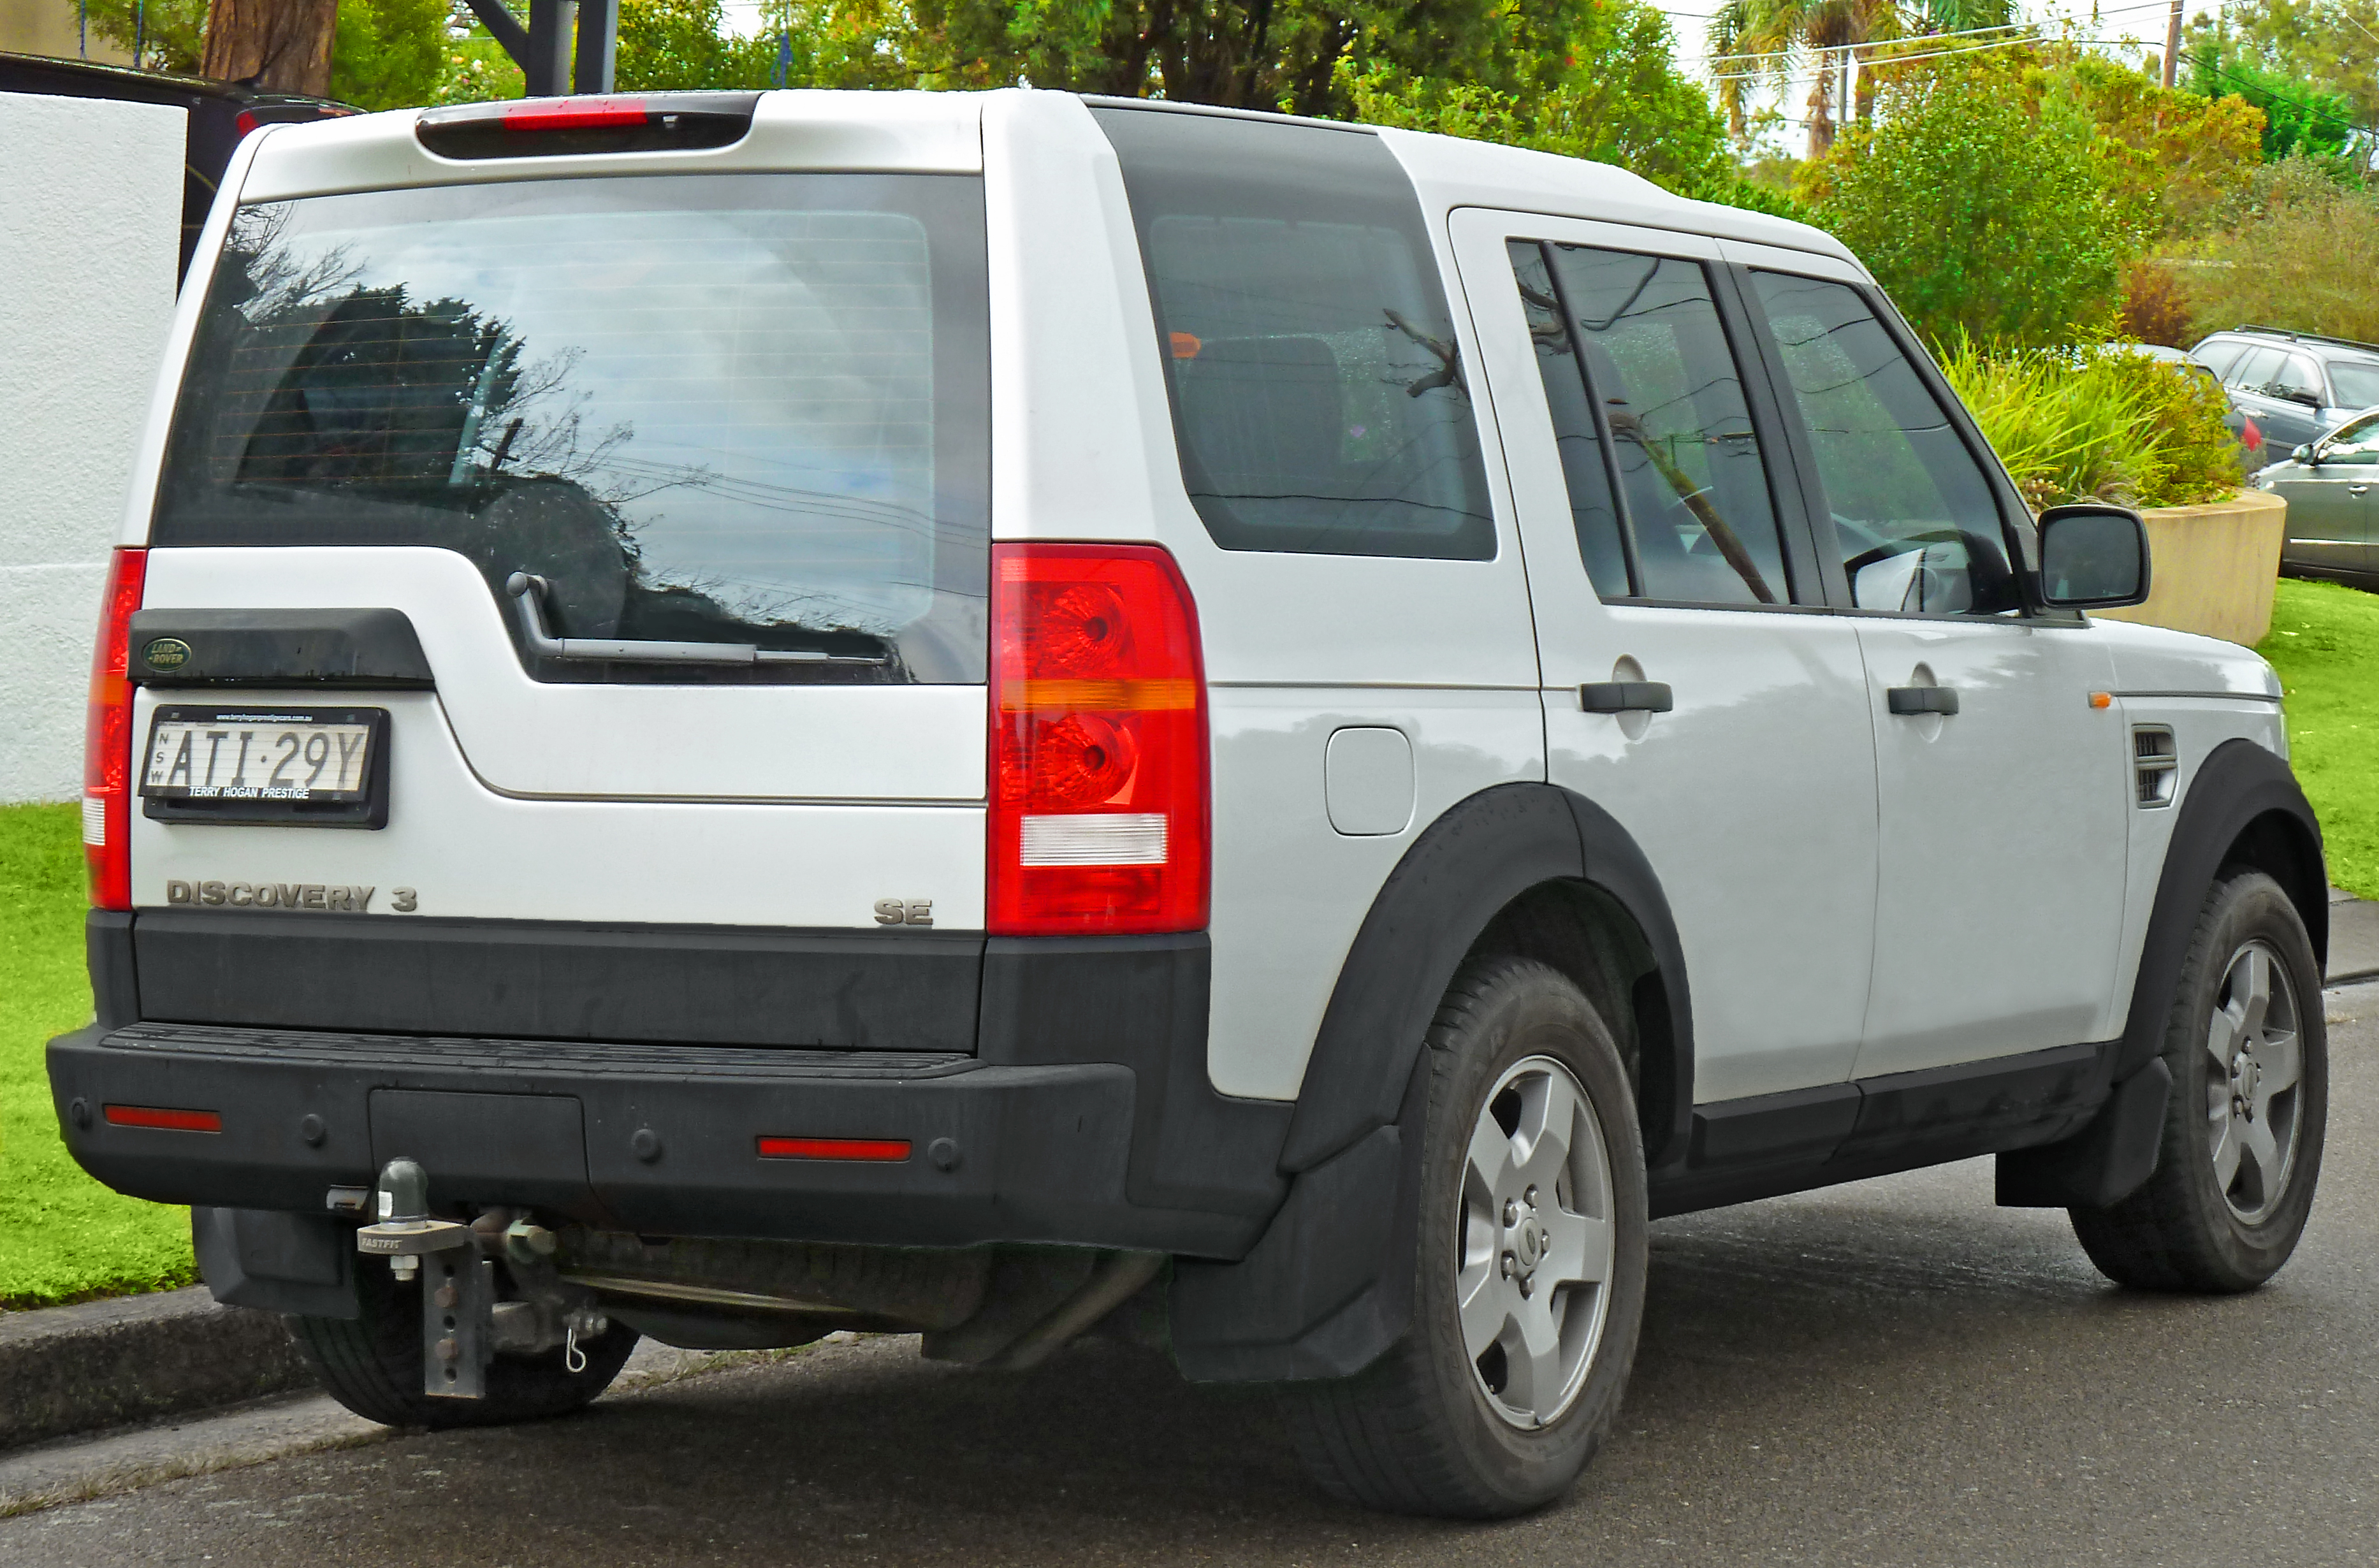 2003 land rover discovery problems with File 2005 2007 Land Rover Discovery 3 Se Wagon  2011 07 17 on Where Is The Coolant Temperature Sensor Located On Vauxhall Astra Diesel 2002 furthermore Egr Valve Location 2003 Hyundai Santa Fe likewise 2009 Ford F150 Fuel Filter Location in addition File 2005 2007 Land Rover Discovery 3 SE wagon  2011 07 17 in addition 2013 A3.